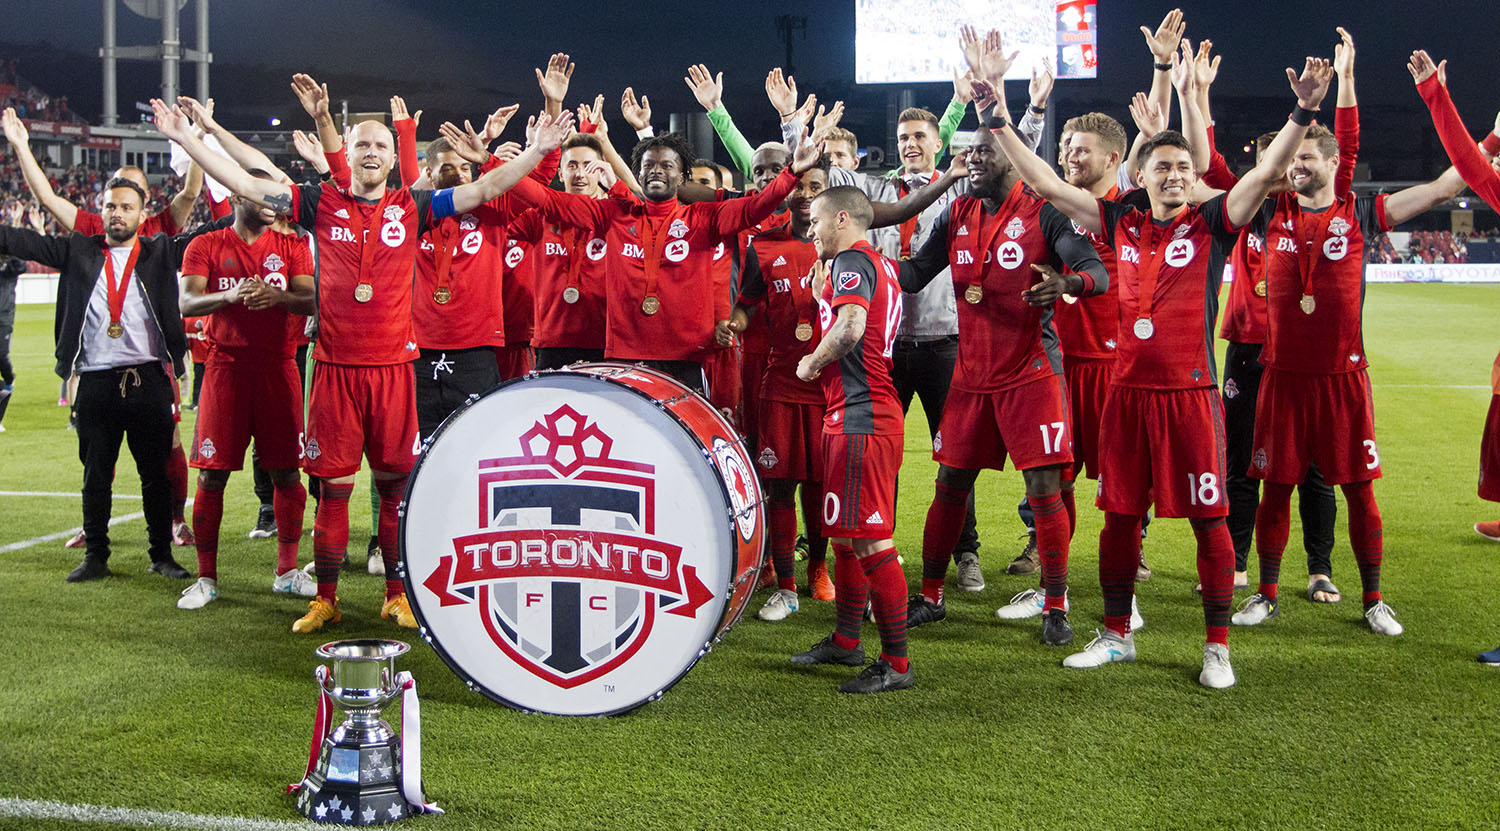 Toronto FC joins the south end supporter's section with the Voyageurs Cup in a thunderclap in 2017.Image by Dennis Marciniak of denMAR Media.